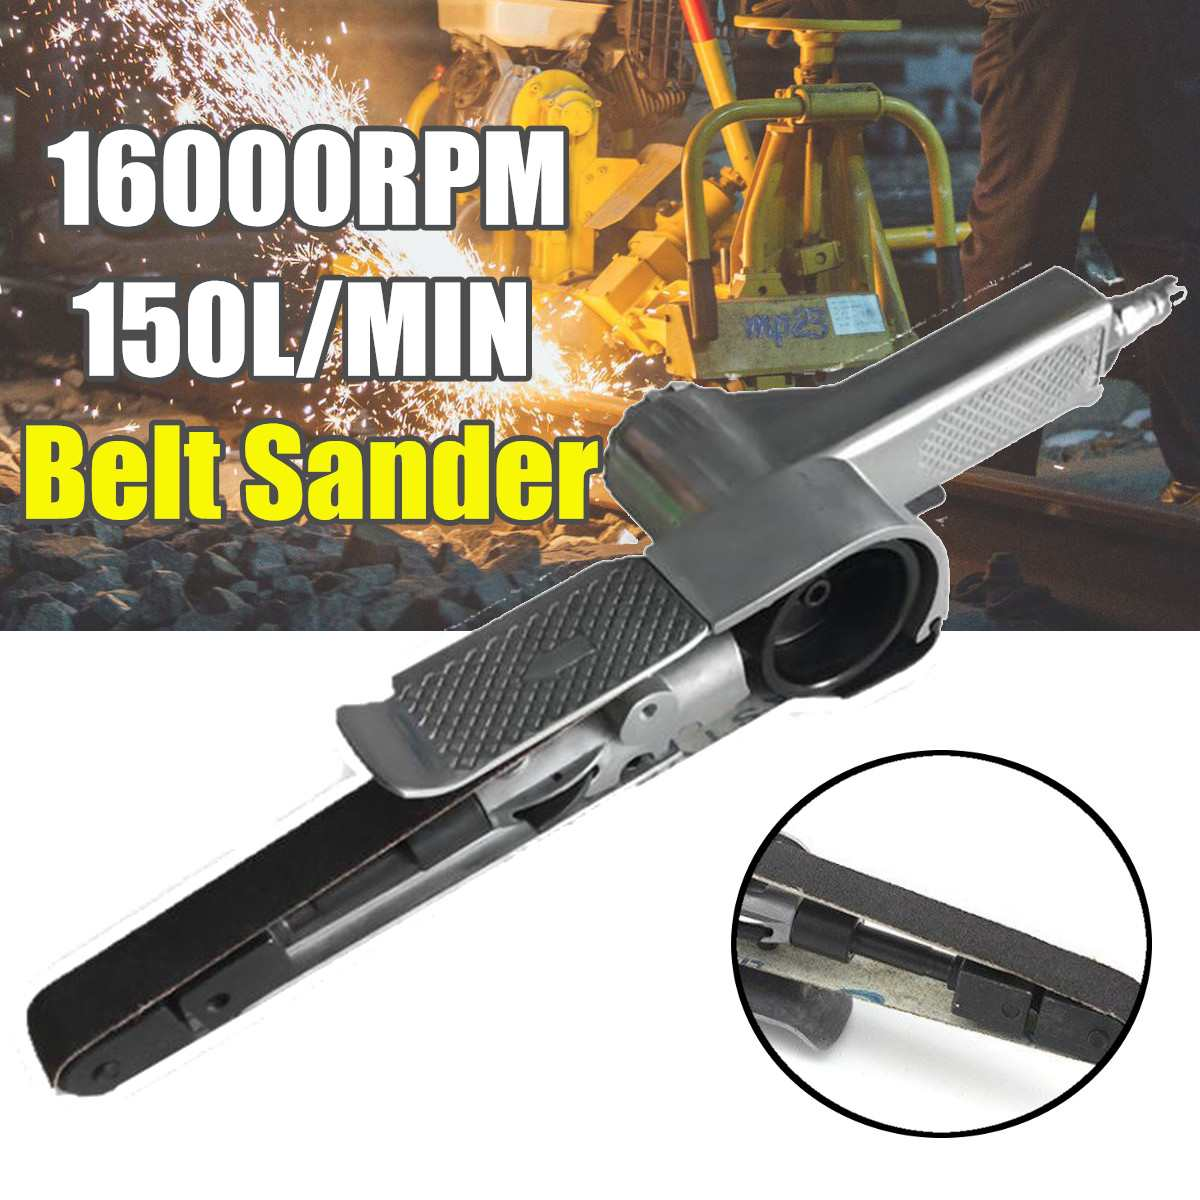 16000RPM 150L/MIN 1/4Air Belt Sander 25 Belts Sander Pneumatic Tools Handheld Grinder Polishing Machine Wrench Power Tools Kit